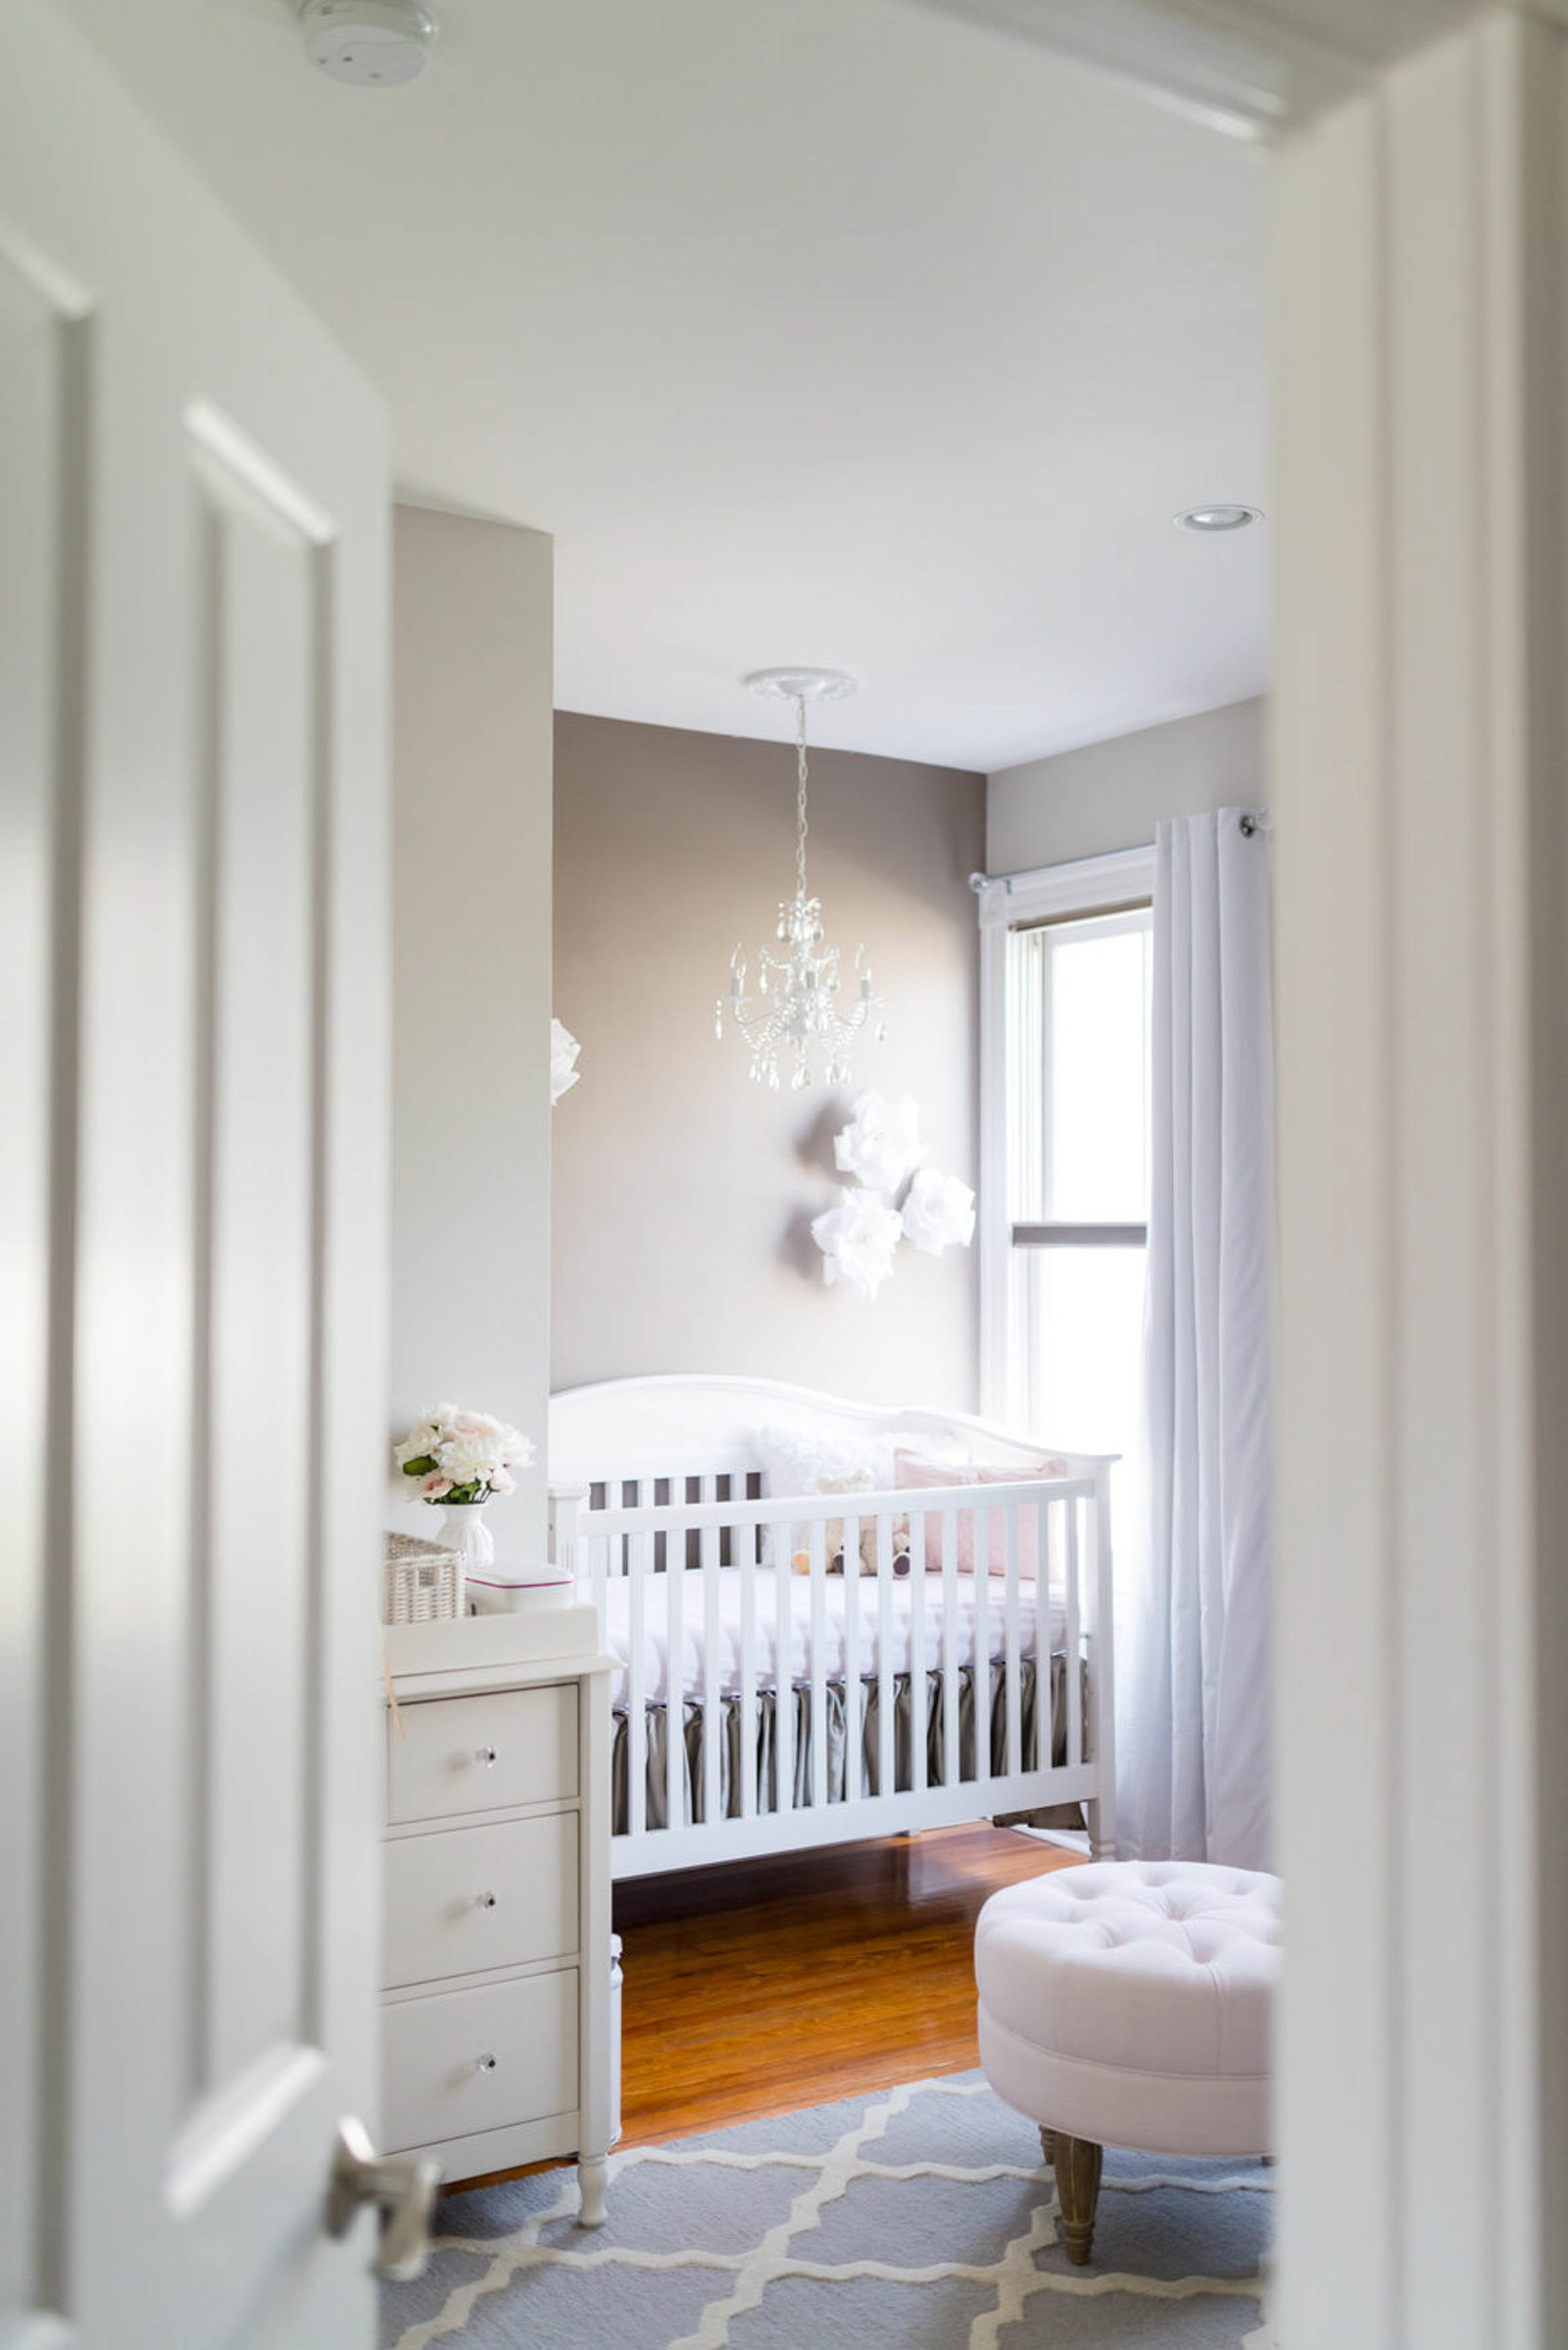 Boston-Newborn-Photographer-Lifestyle-Documentary-Home-Styled-Session-81